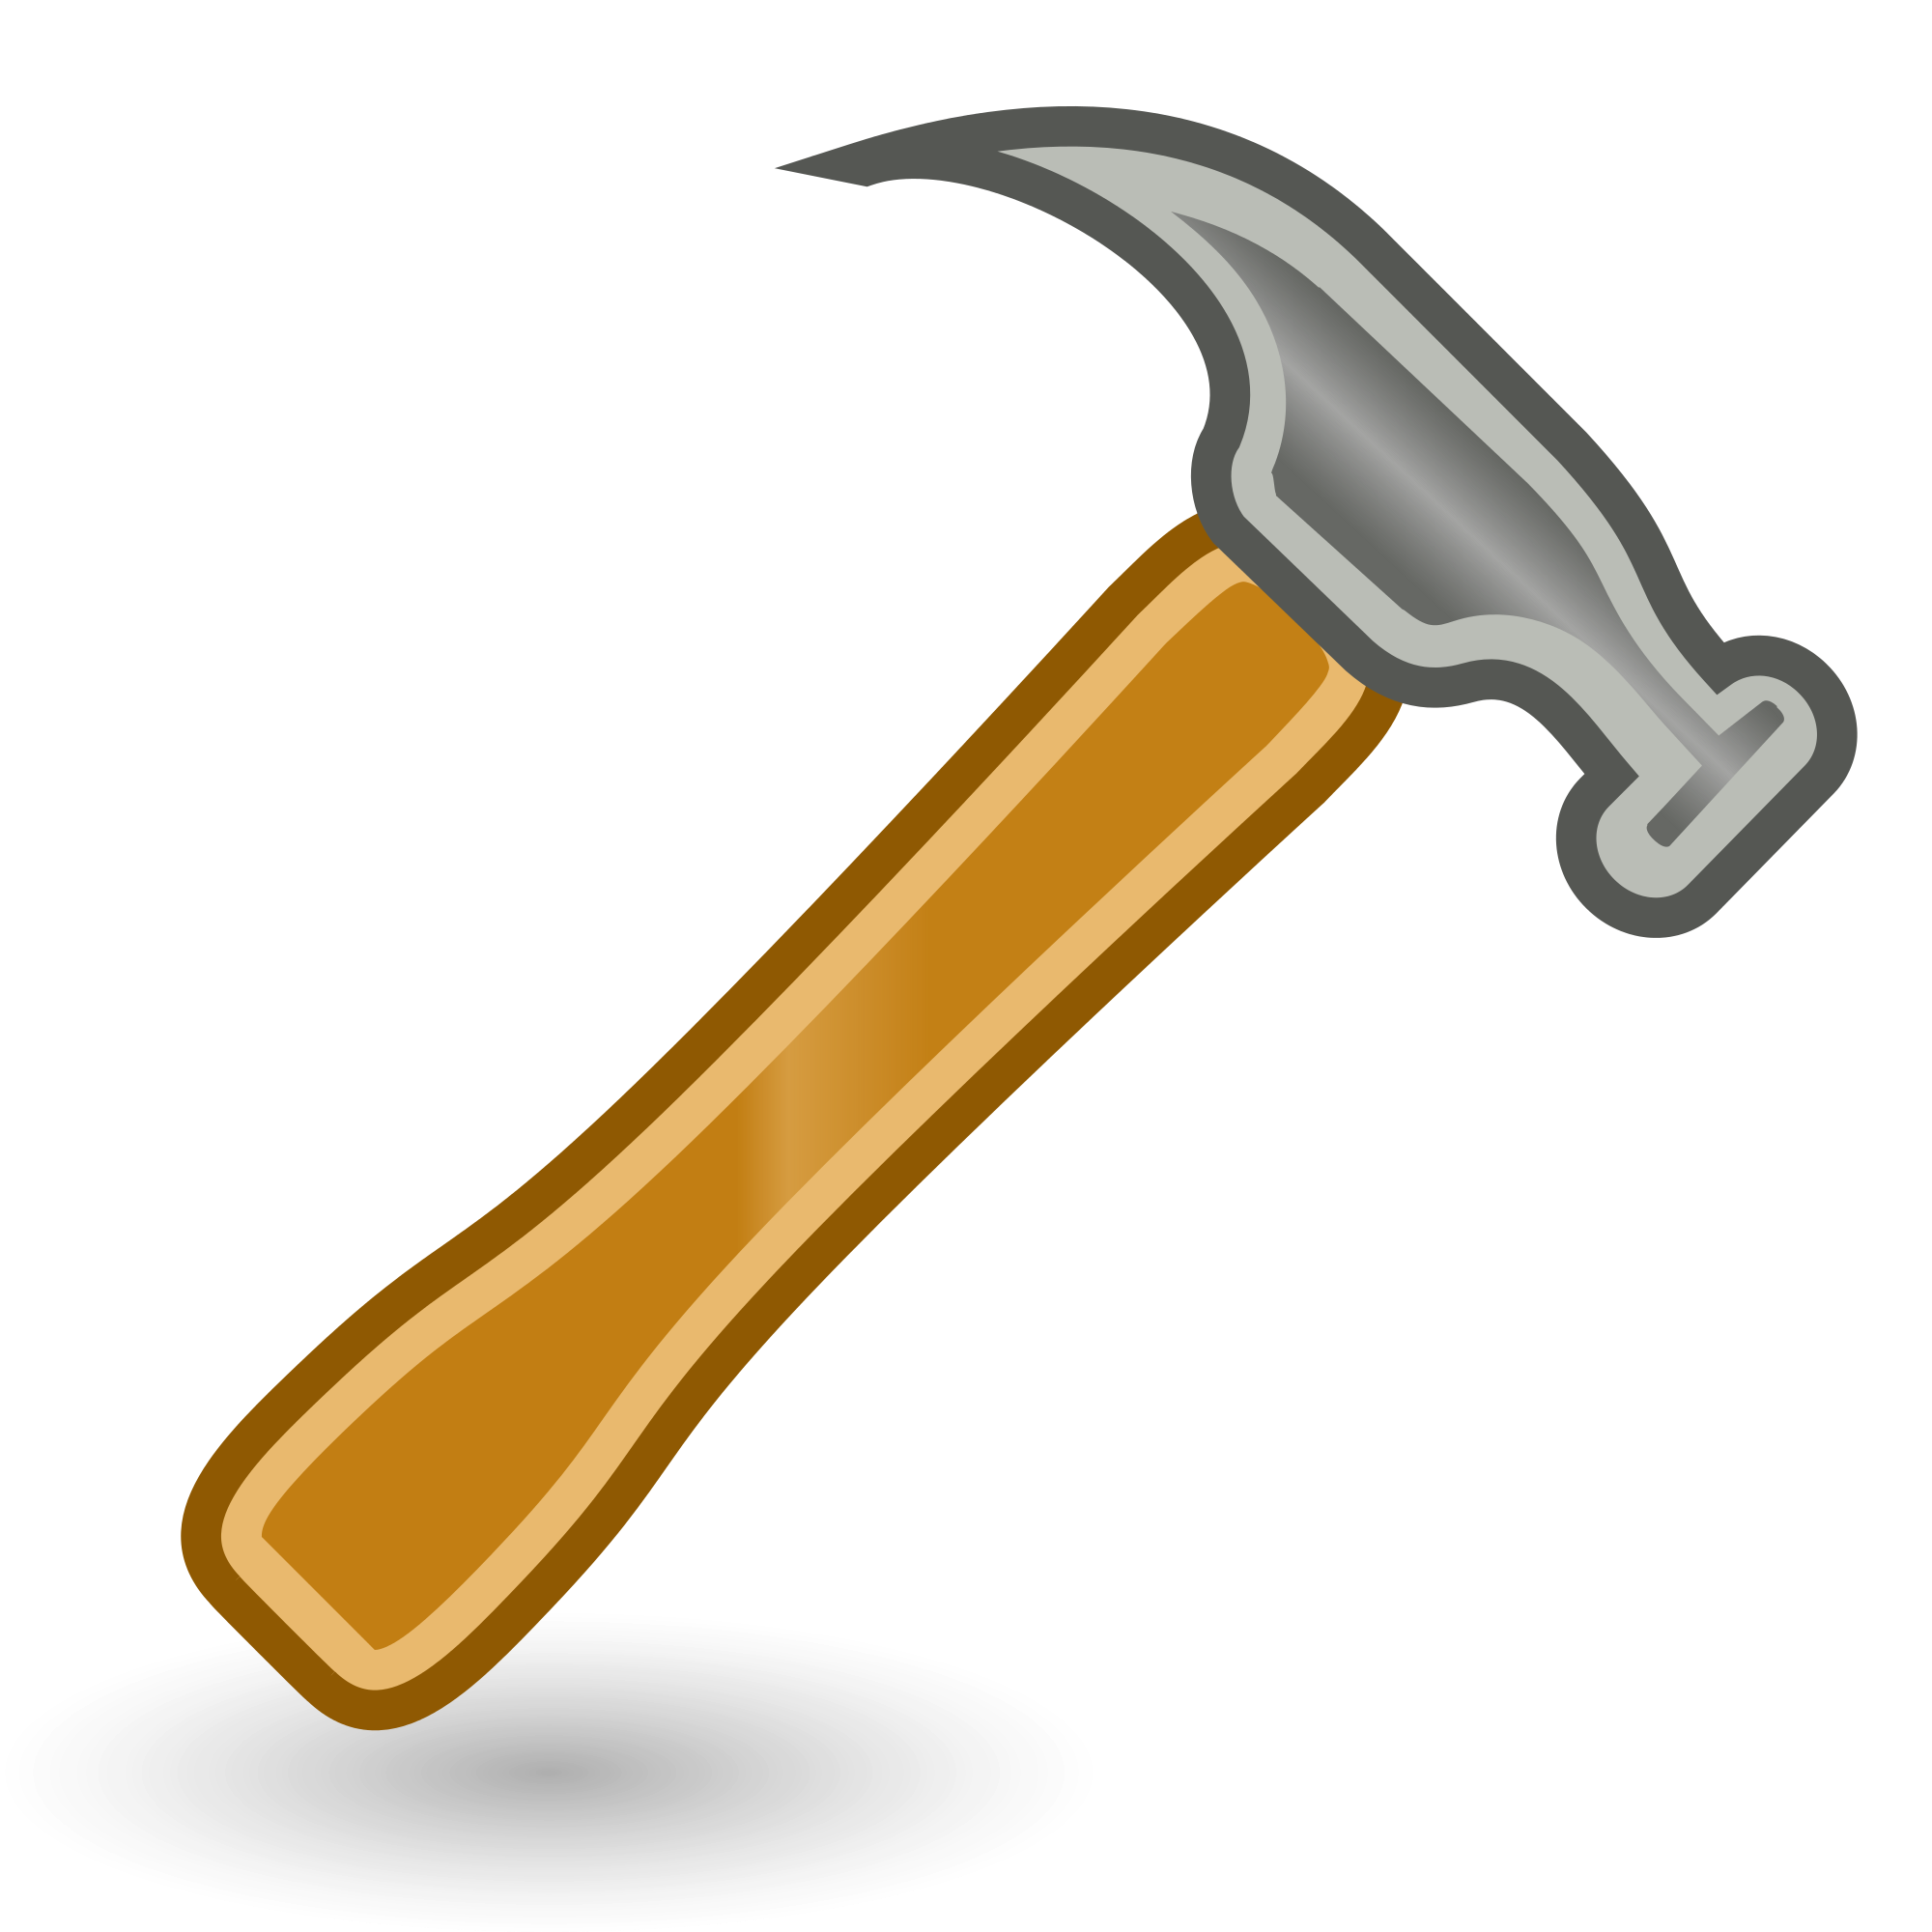 Claw clip art png. Hammer clipart clear background